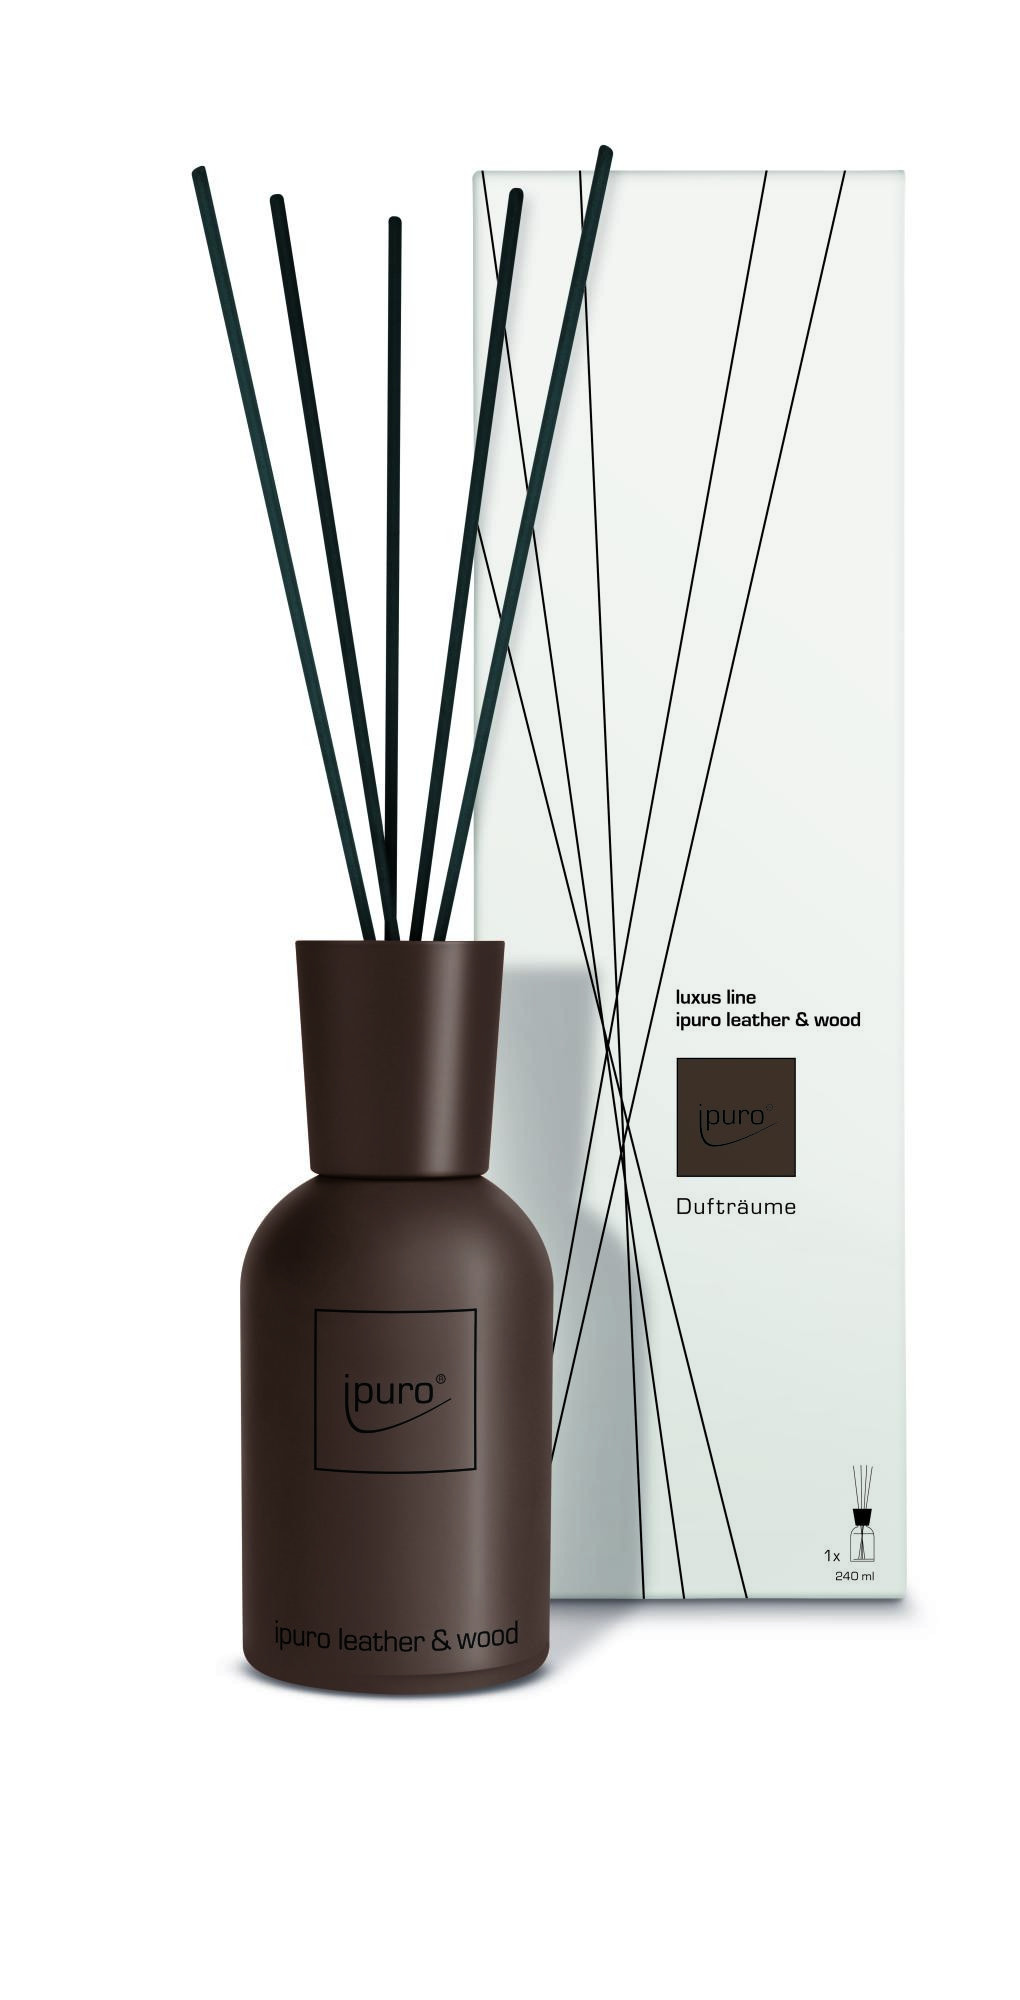 luxus line brown leather & wood Raumduft-Diffusor